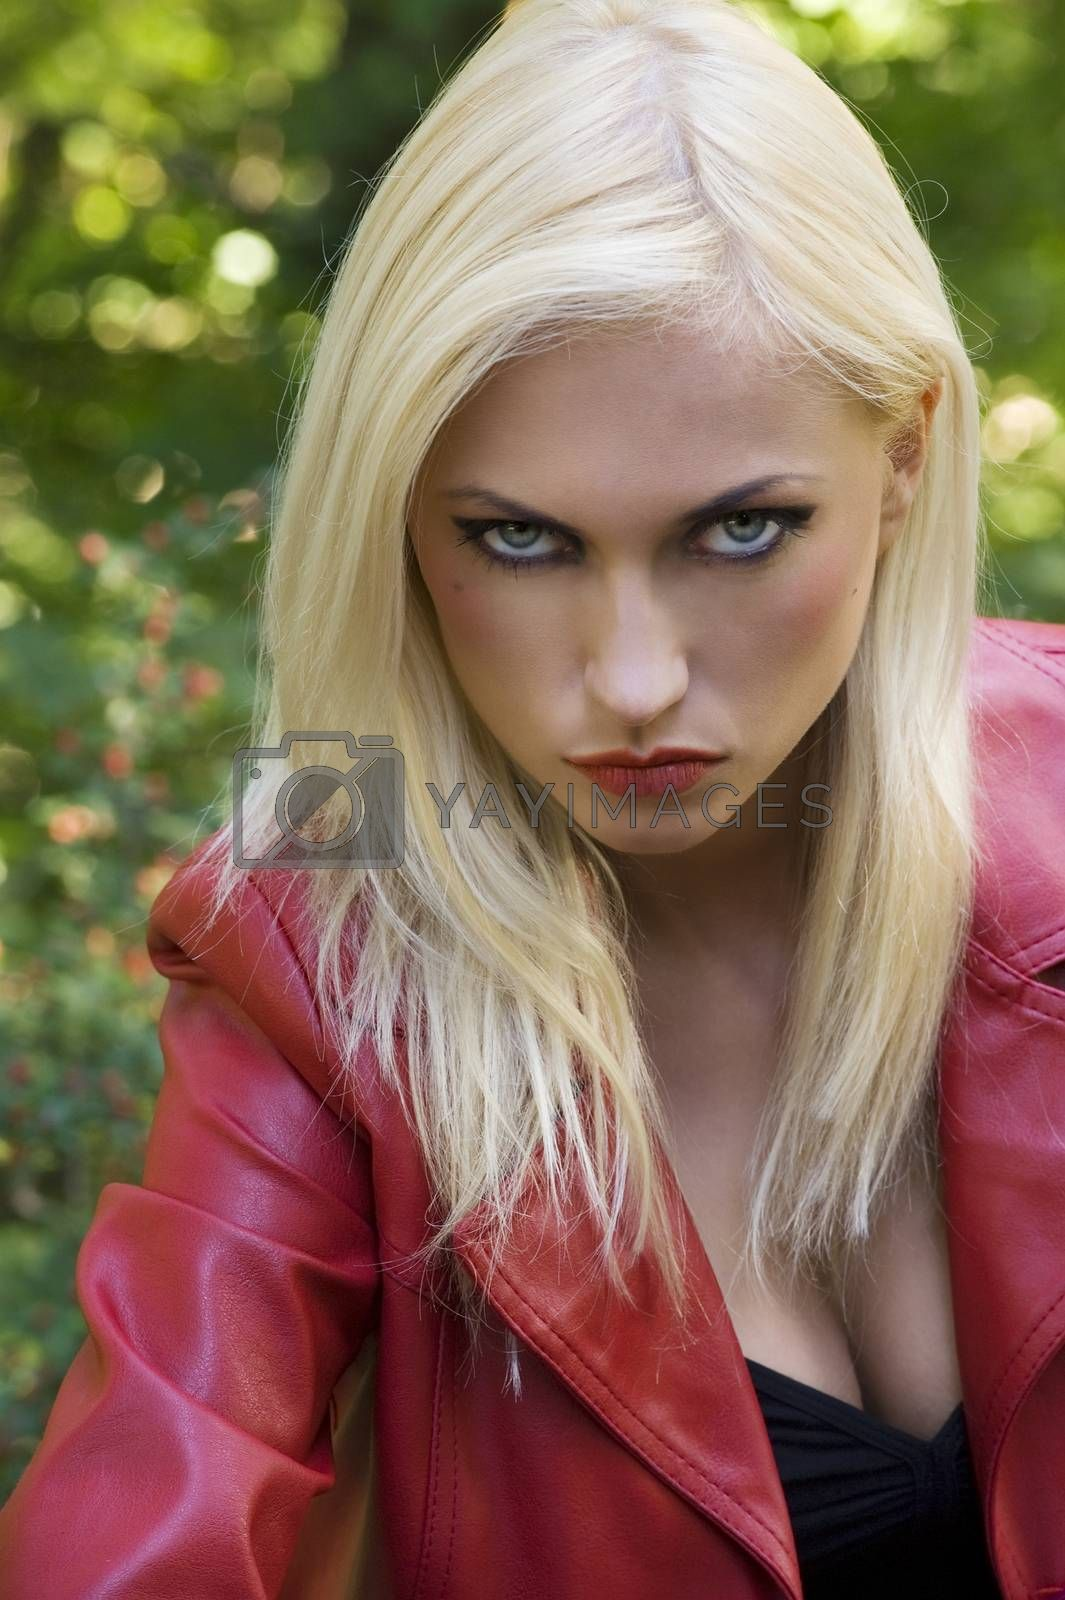 Royalty free image of blond girl anger in park by fotoCD